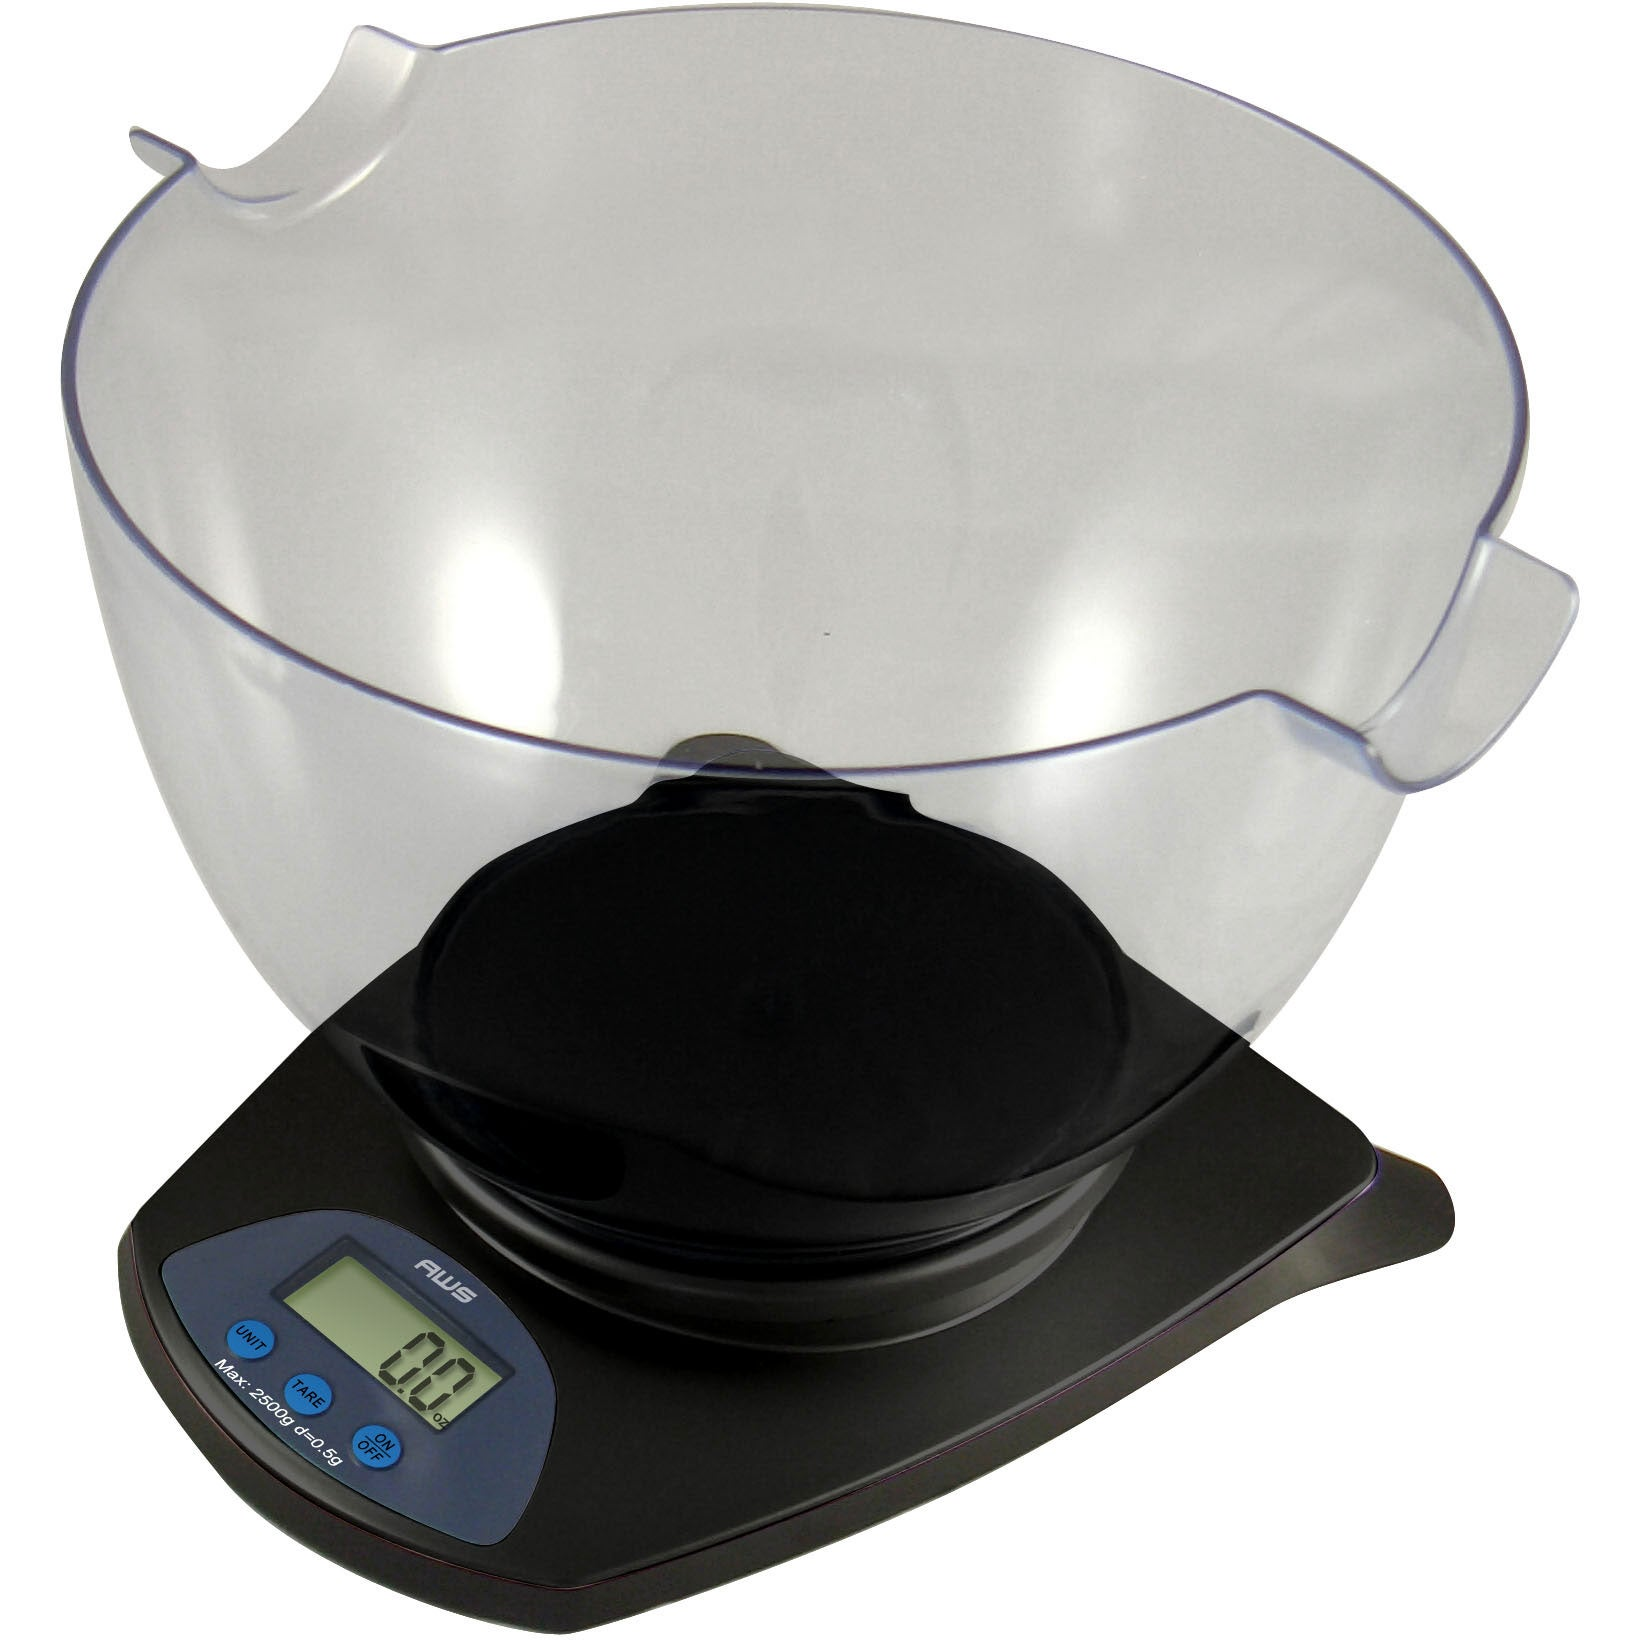 American Weigh Scales American Weigh Black Digital Scale with Bowl